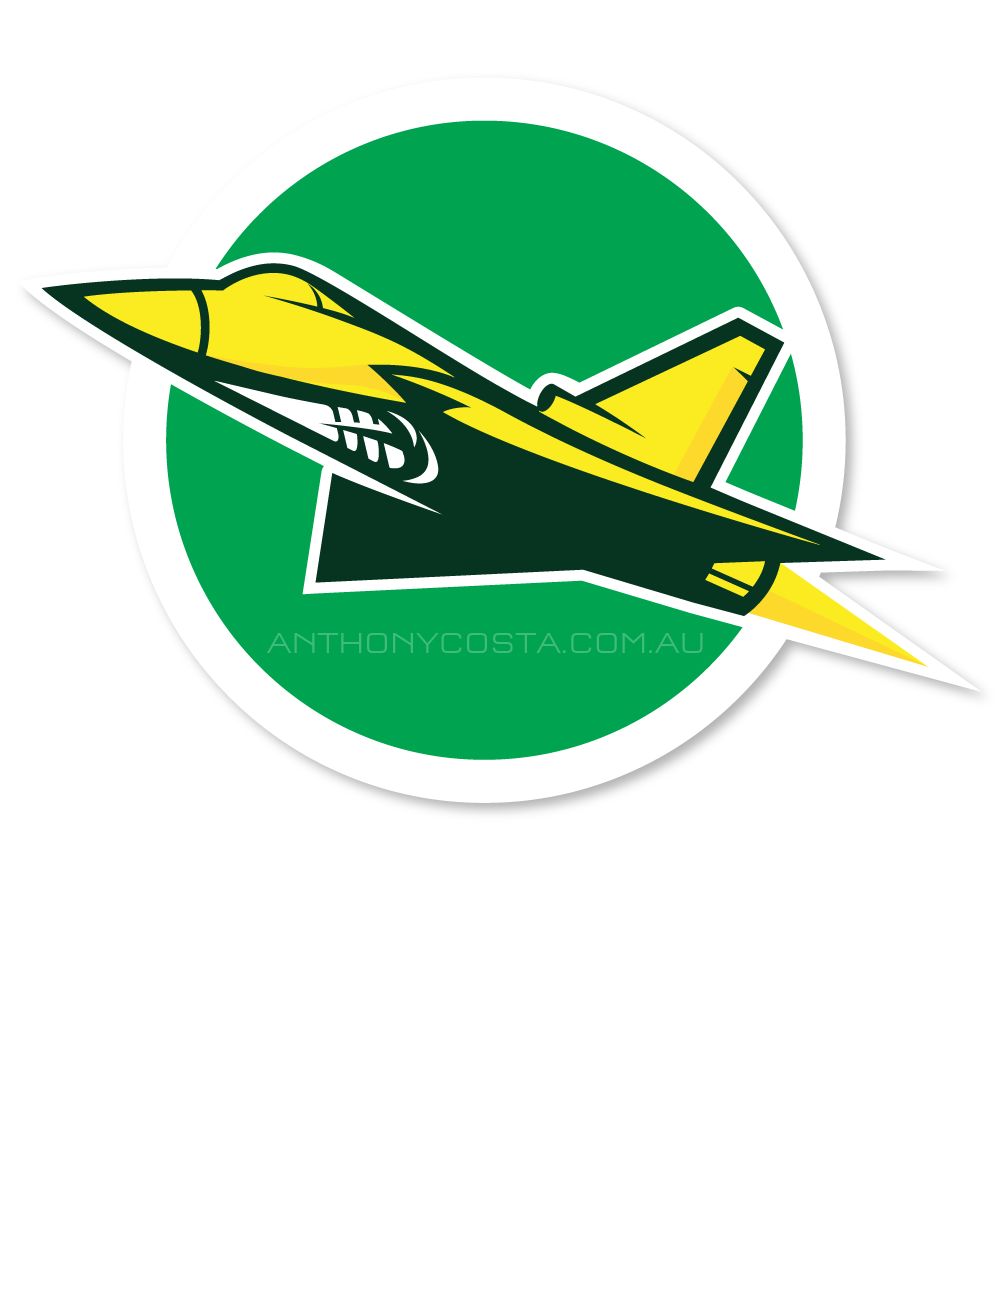 Joondalup Jets AFL sports logo design